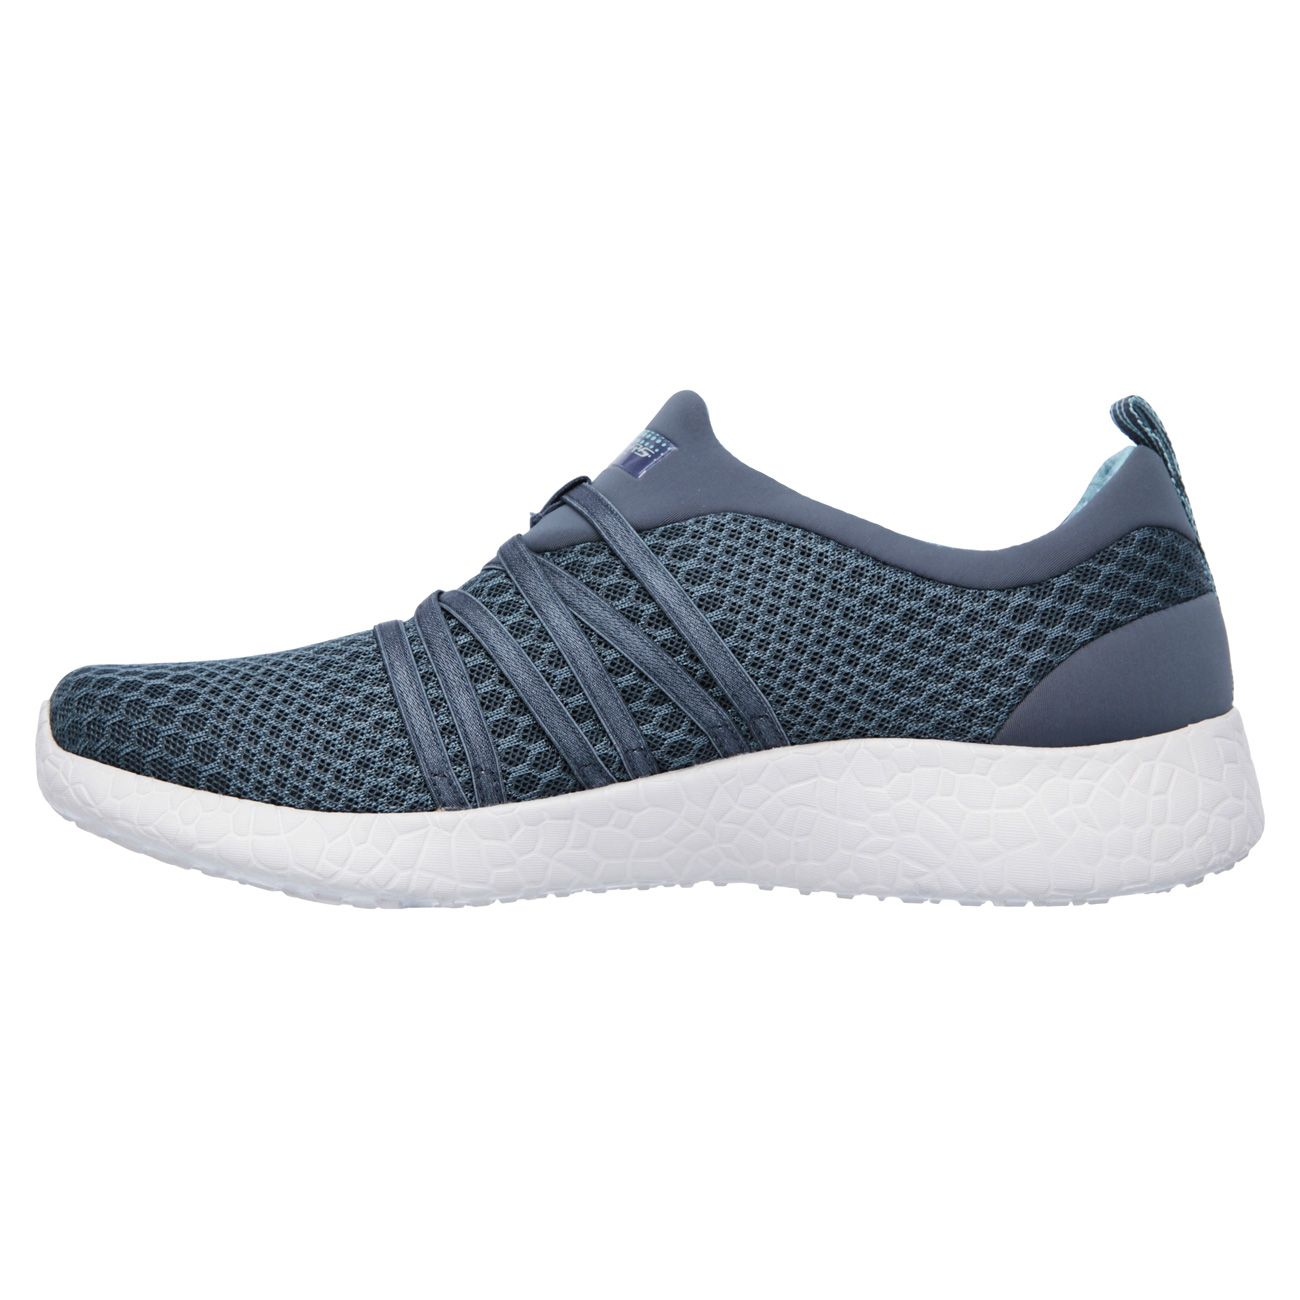 Skechers Stretch Fit Tennis Shoes